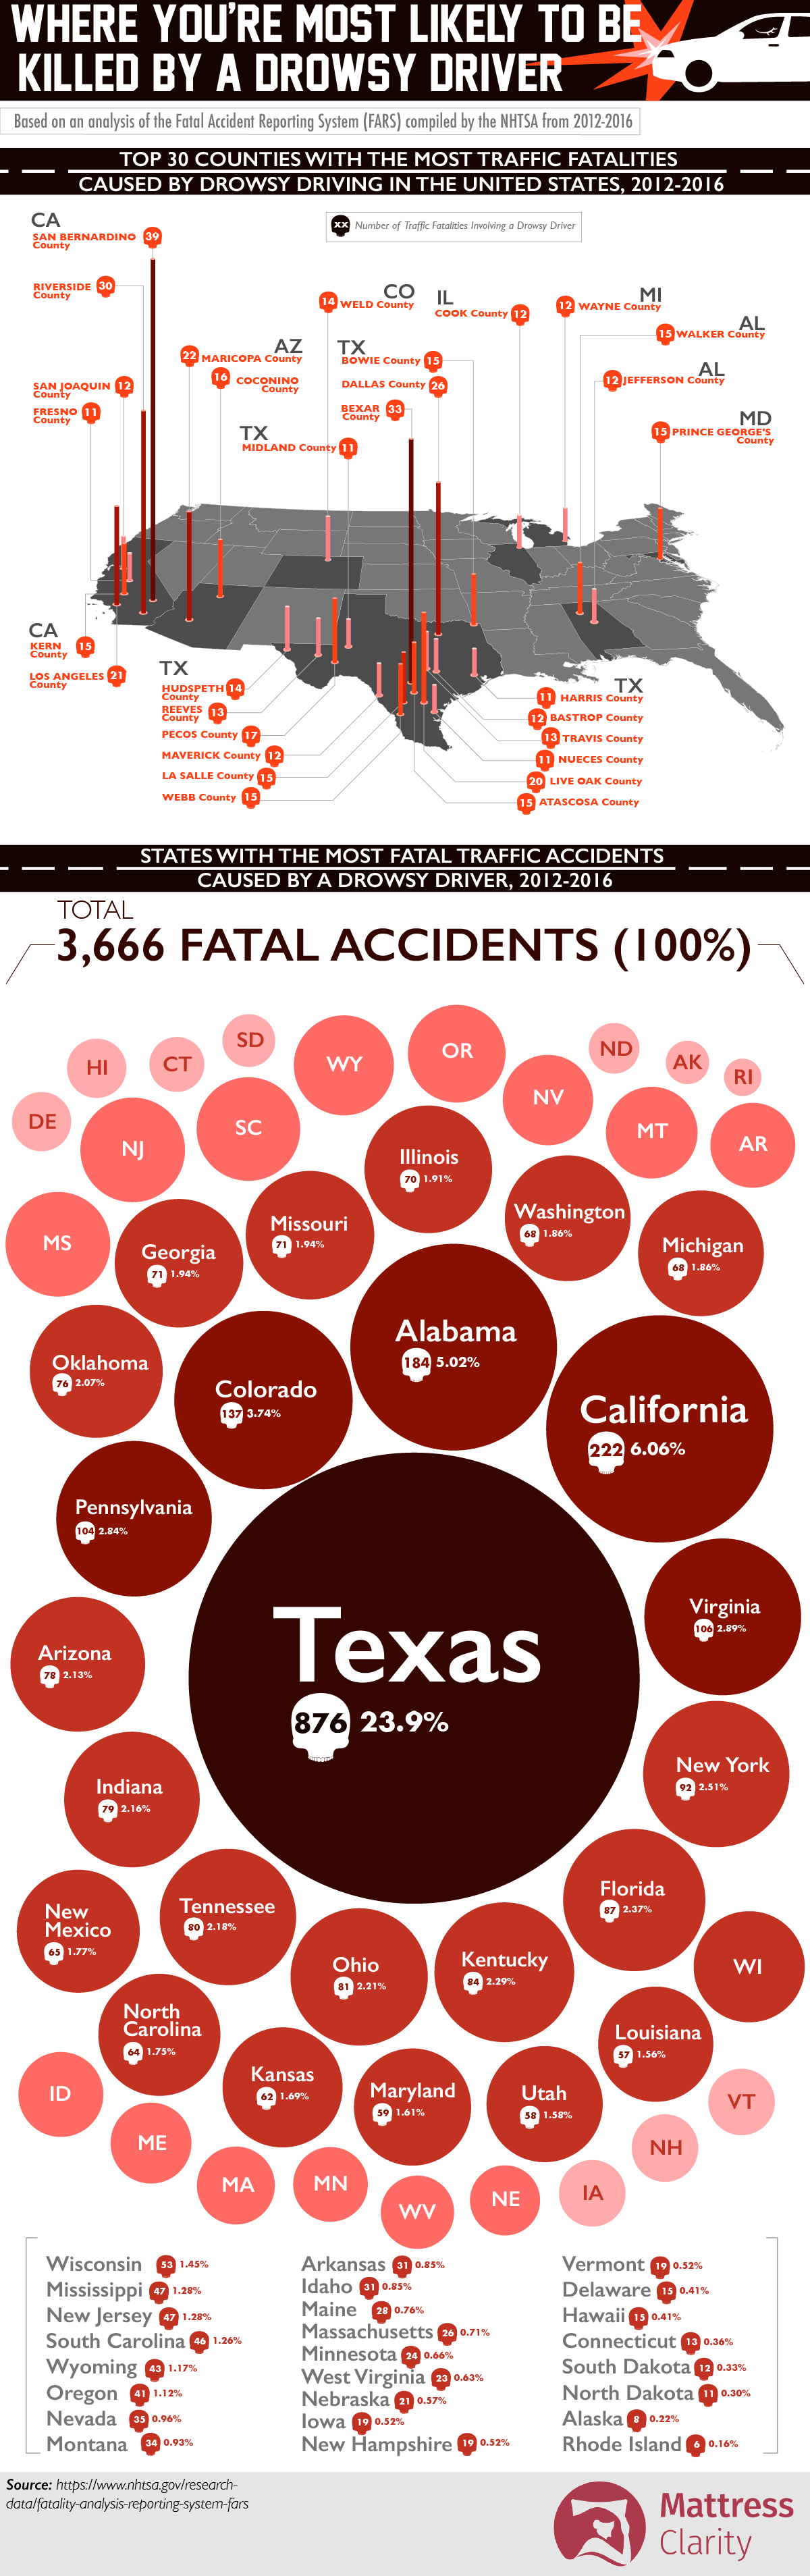 Drowsy Driver Traffic Fatalities: State and County-Wise Statistics - Infographic